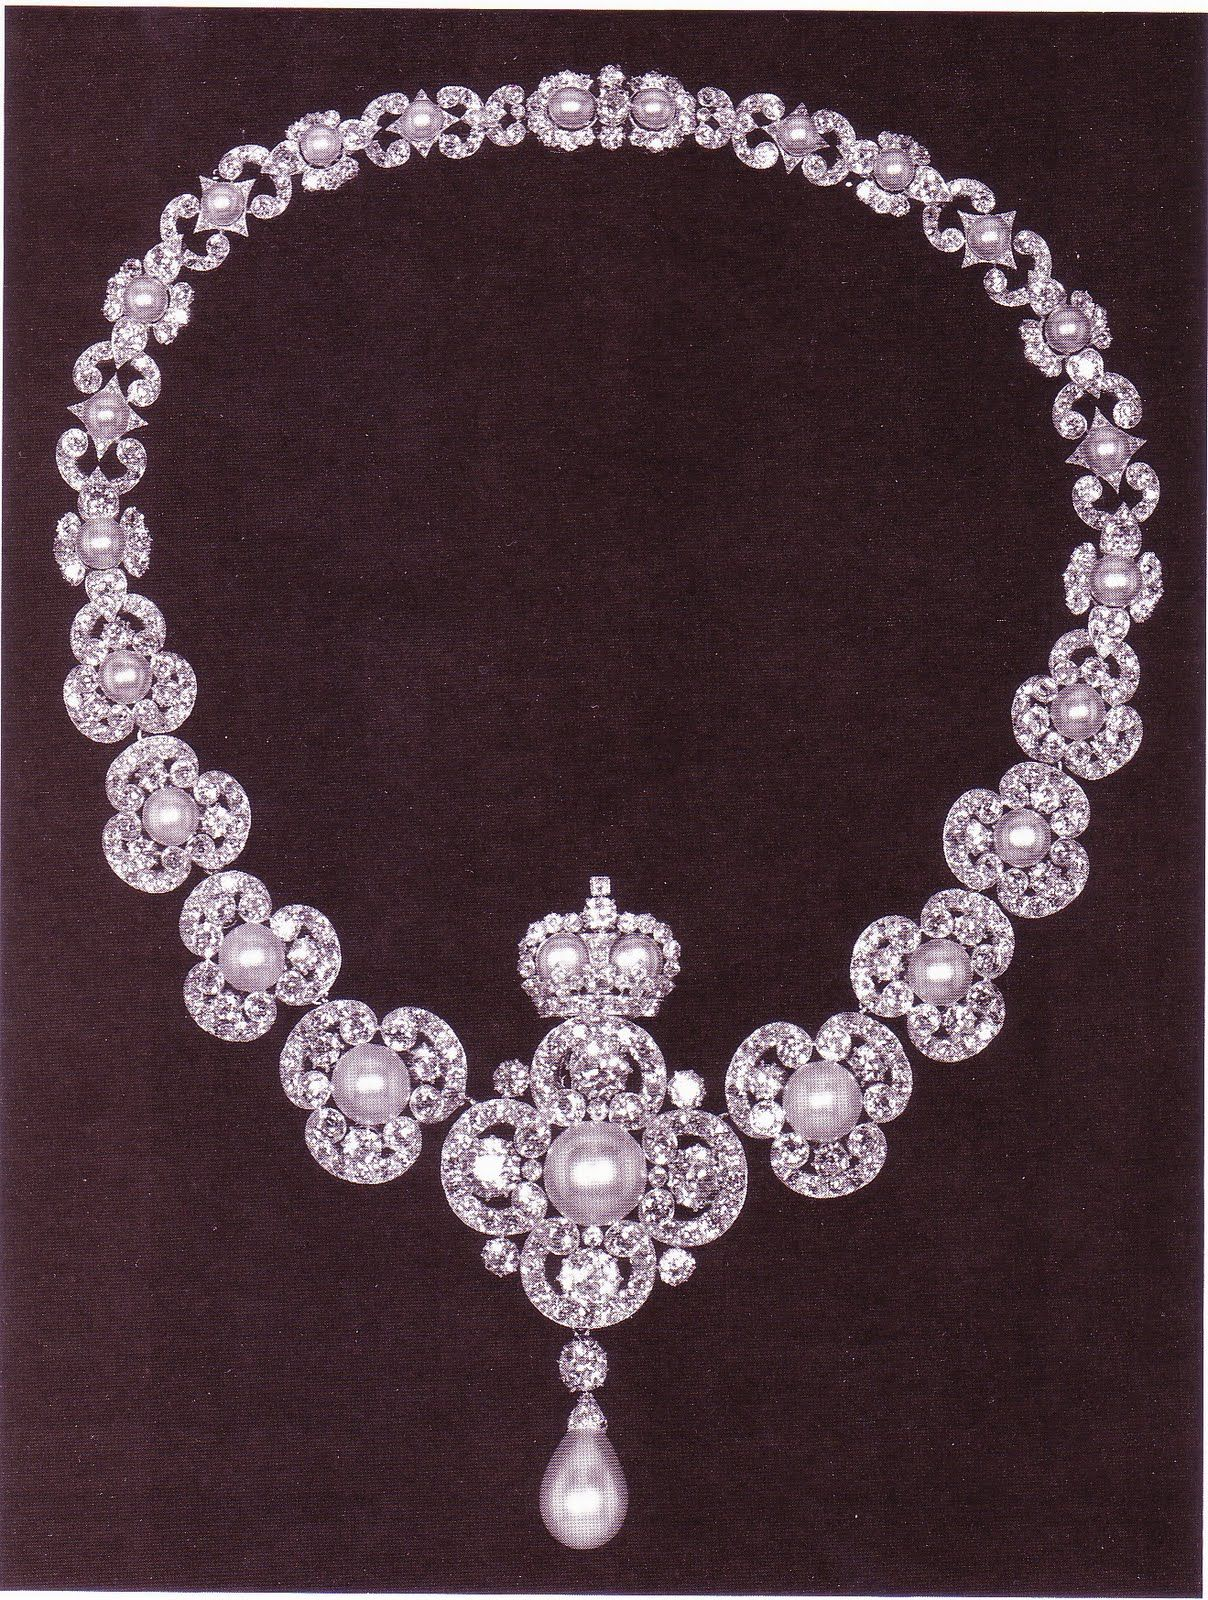 Gracie Jewellery The Countdown to the Royal Wedding